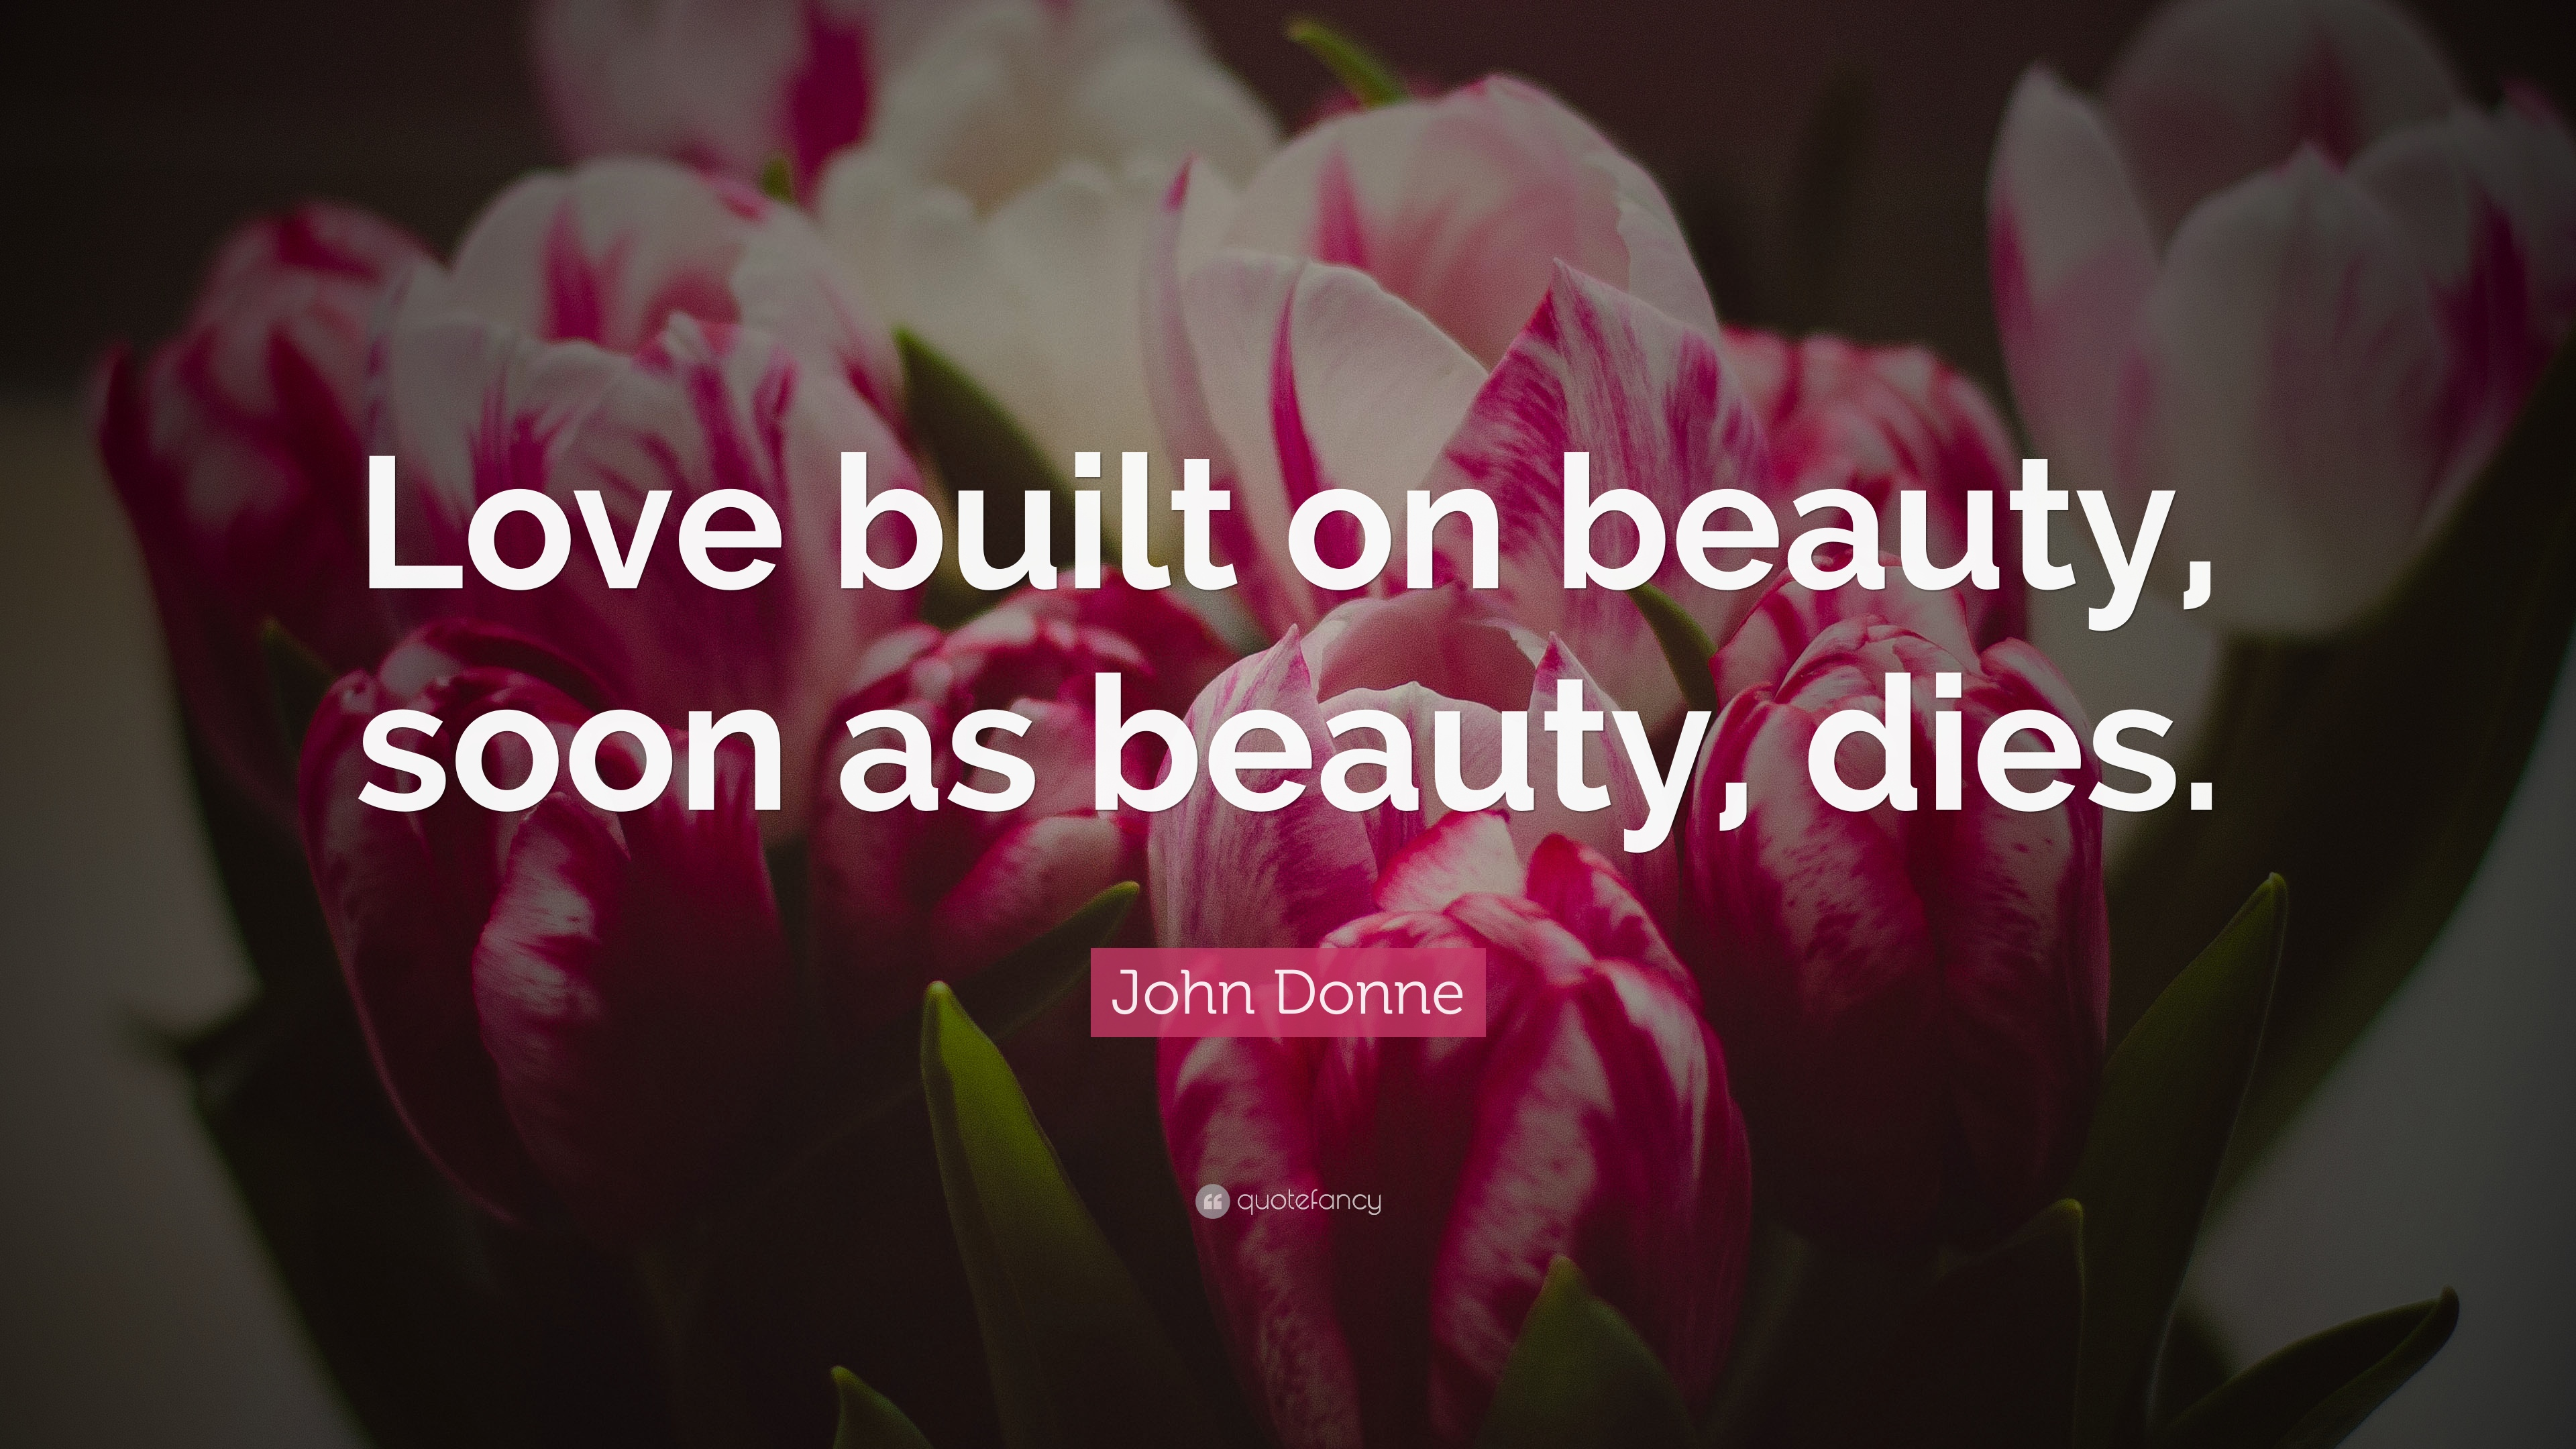 Beauty Quotes Love Built On Soon As Dies